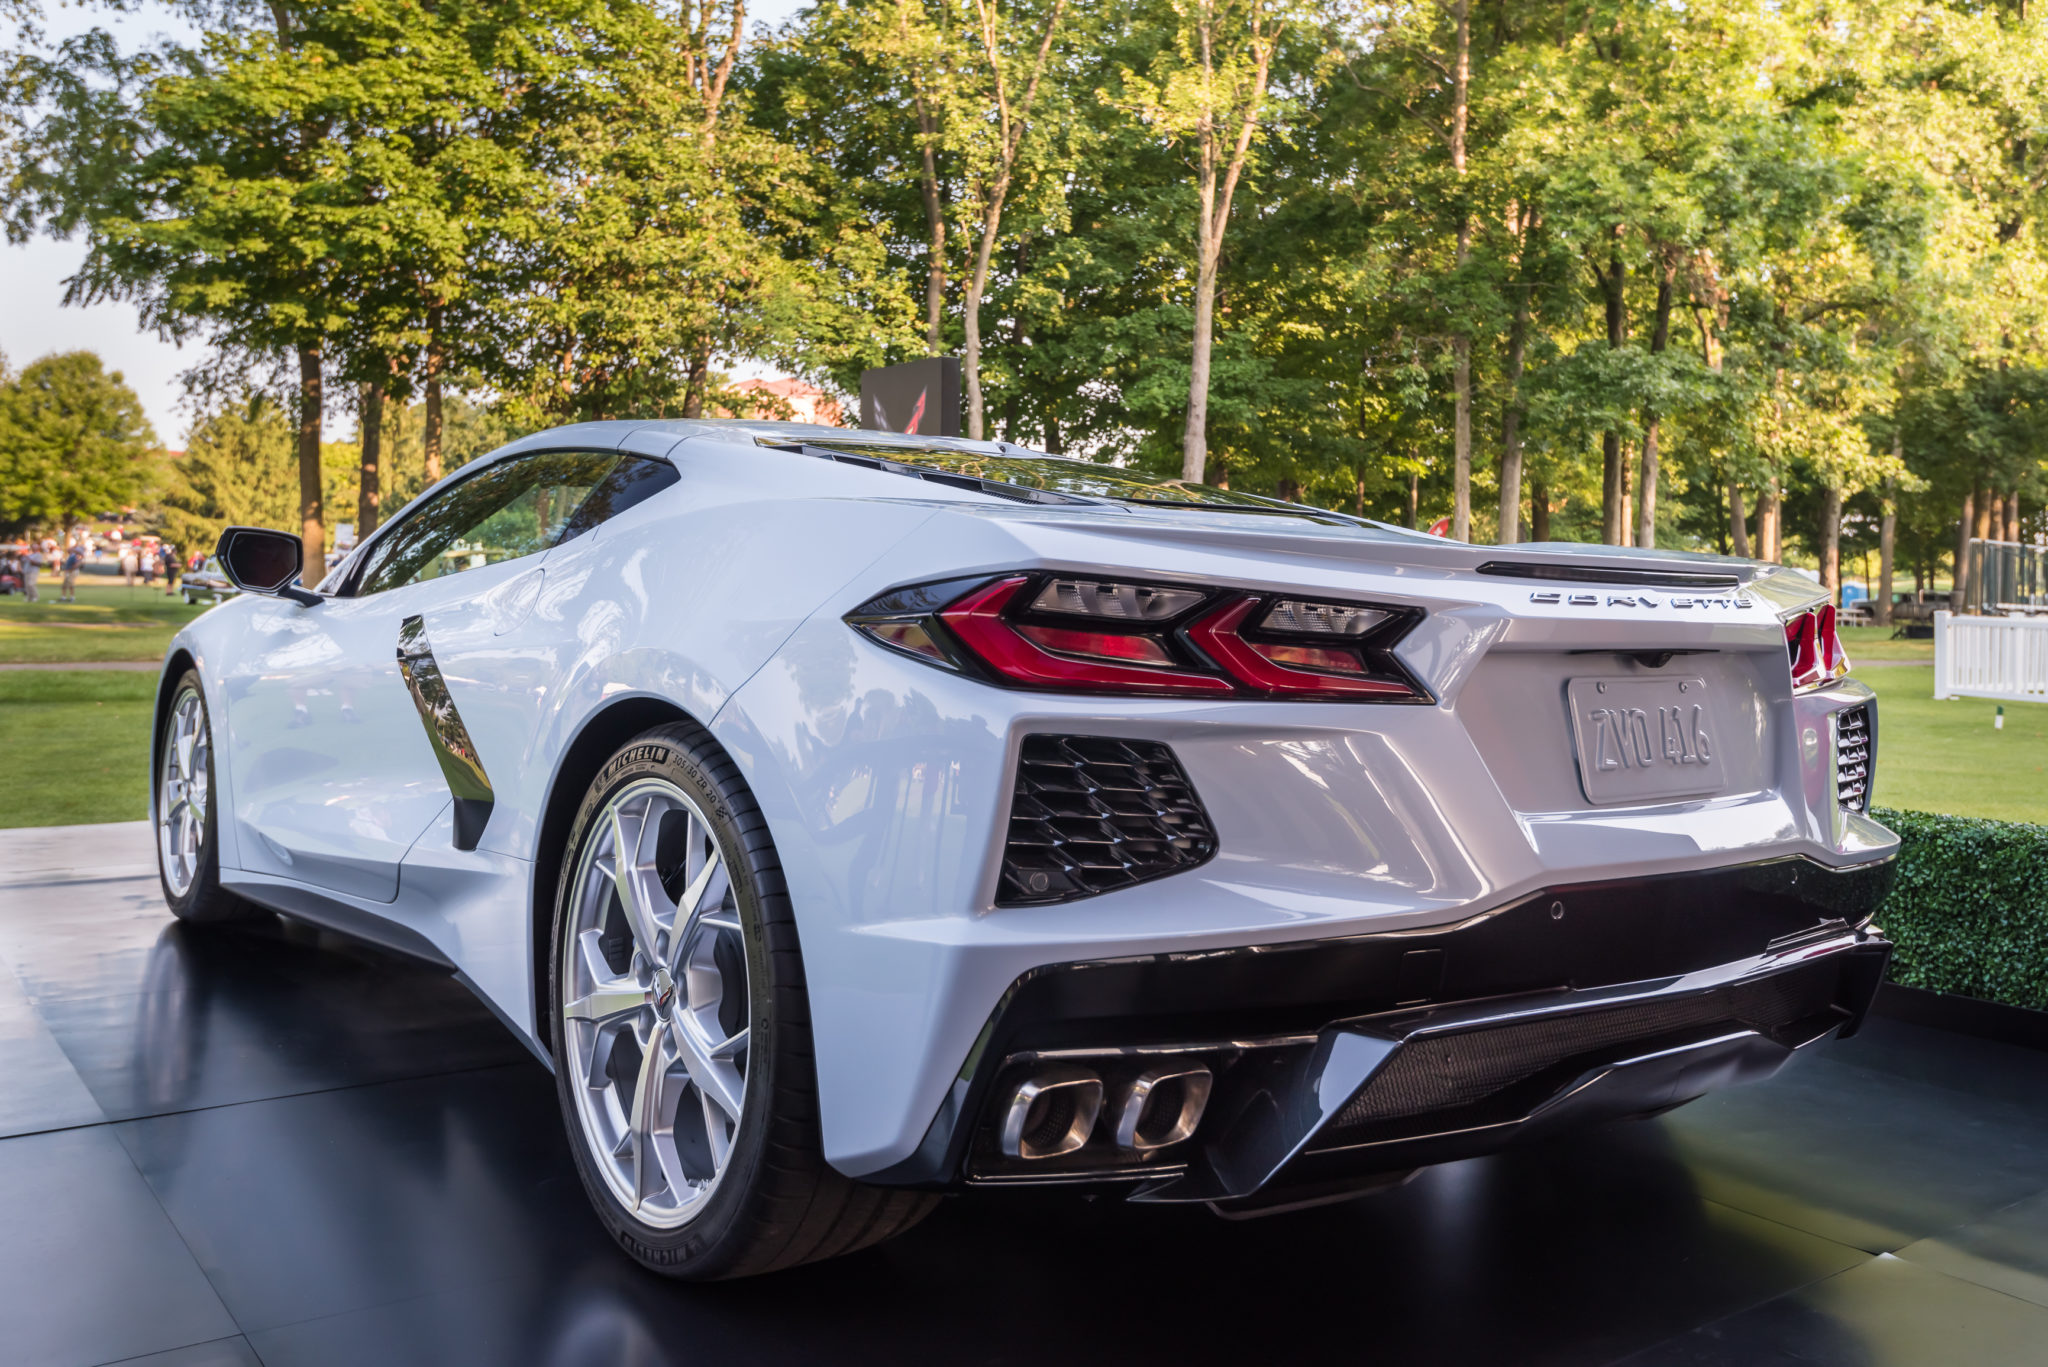 7 Mufflers And Aftermarket Exhaust Parts For Your Daily Driver Autoanything